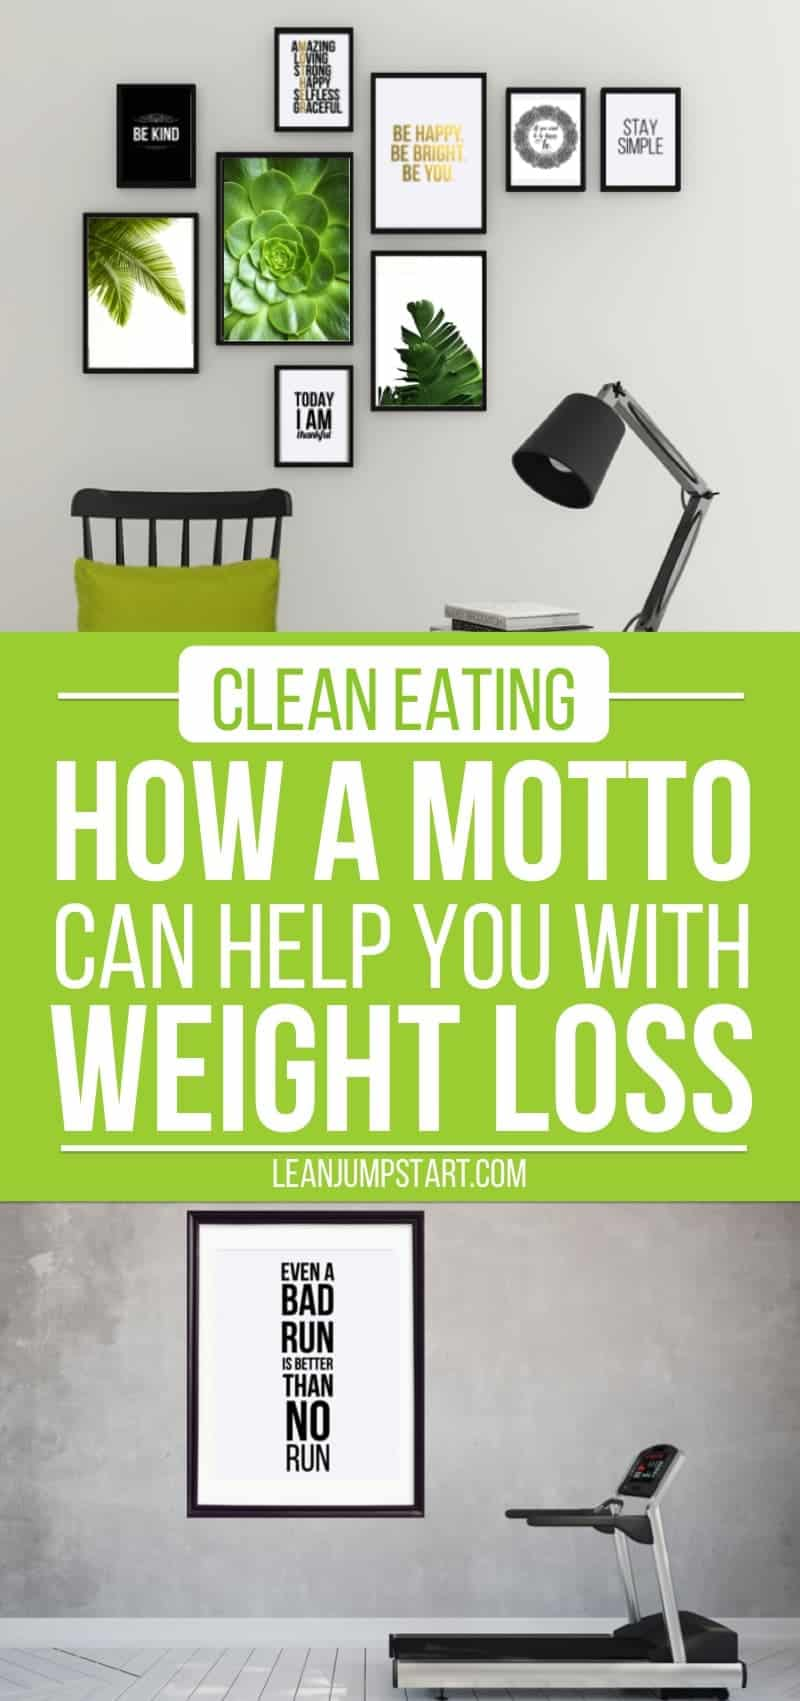 Clean Eating: how a motto can help with weight loss